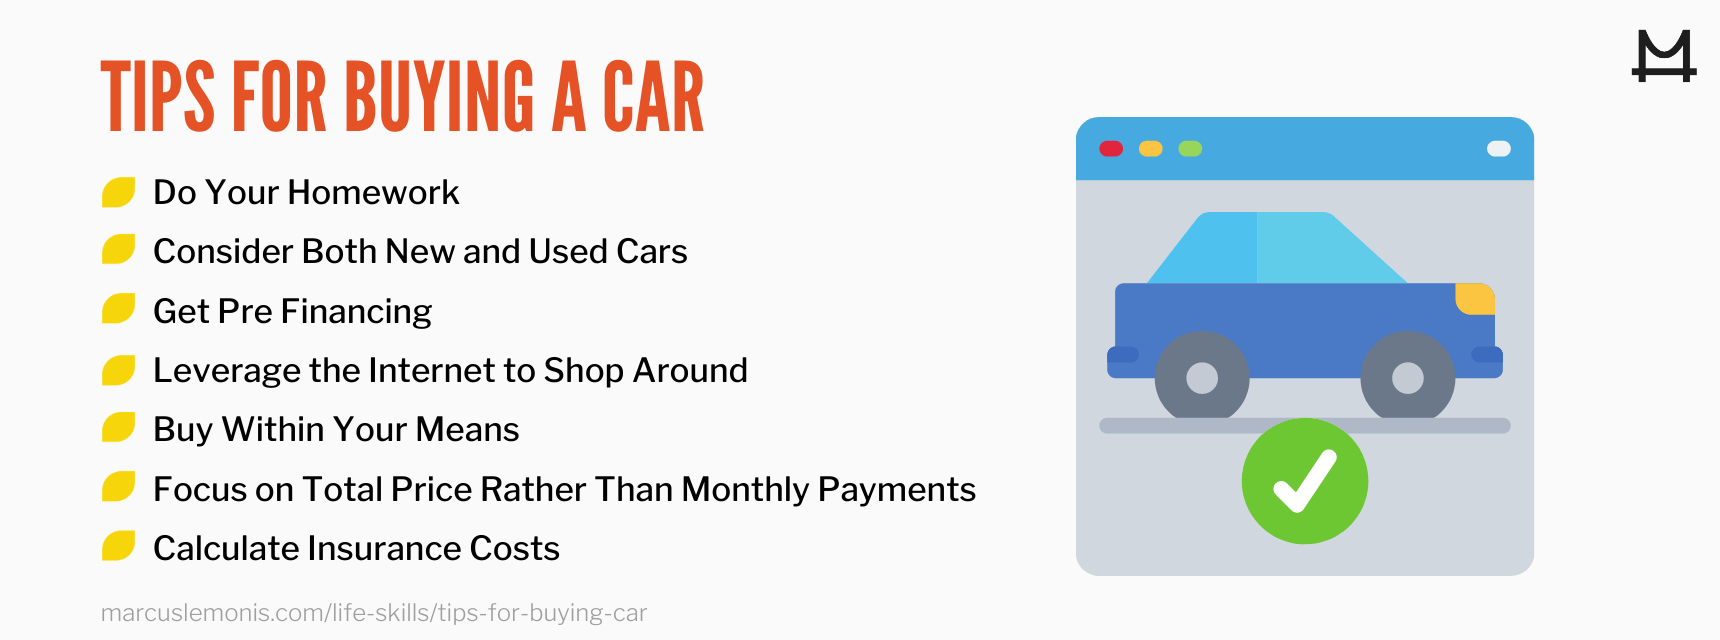 List of tips for buying a car.